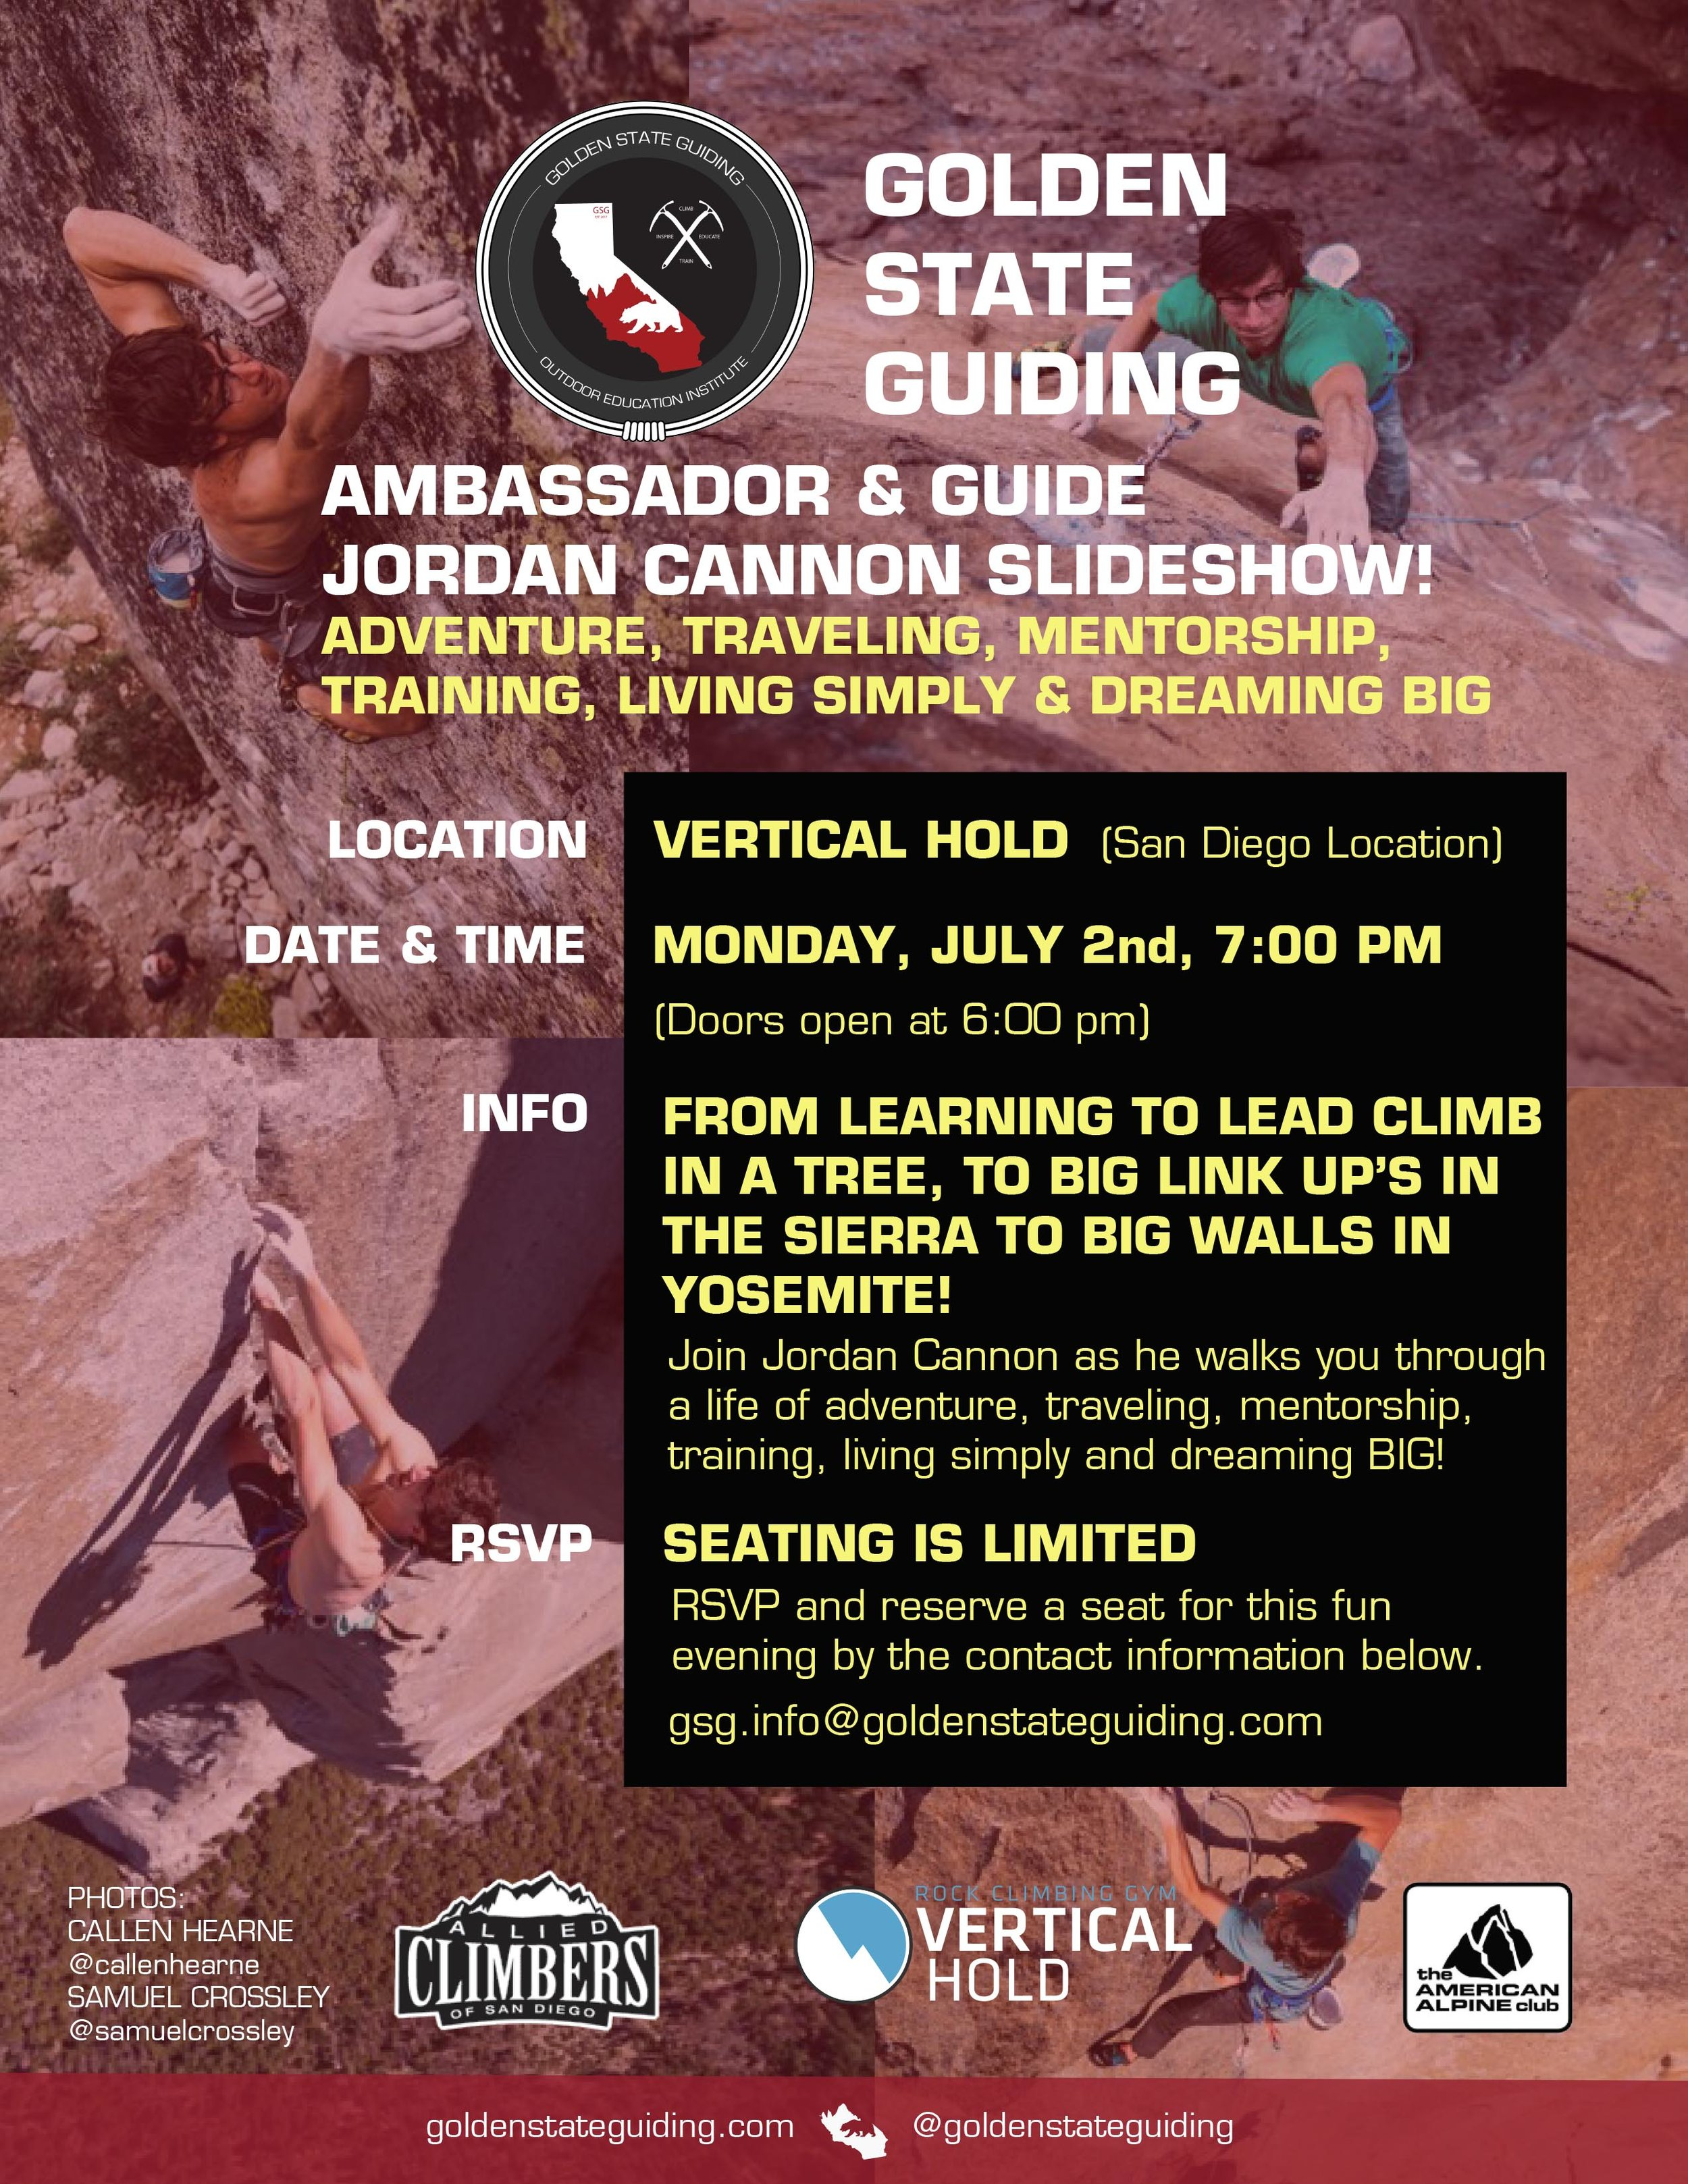 Golden State Guiding Ambassador Jordan Cannon Slideshow